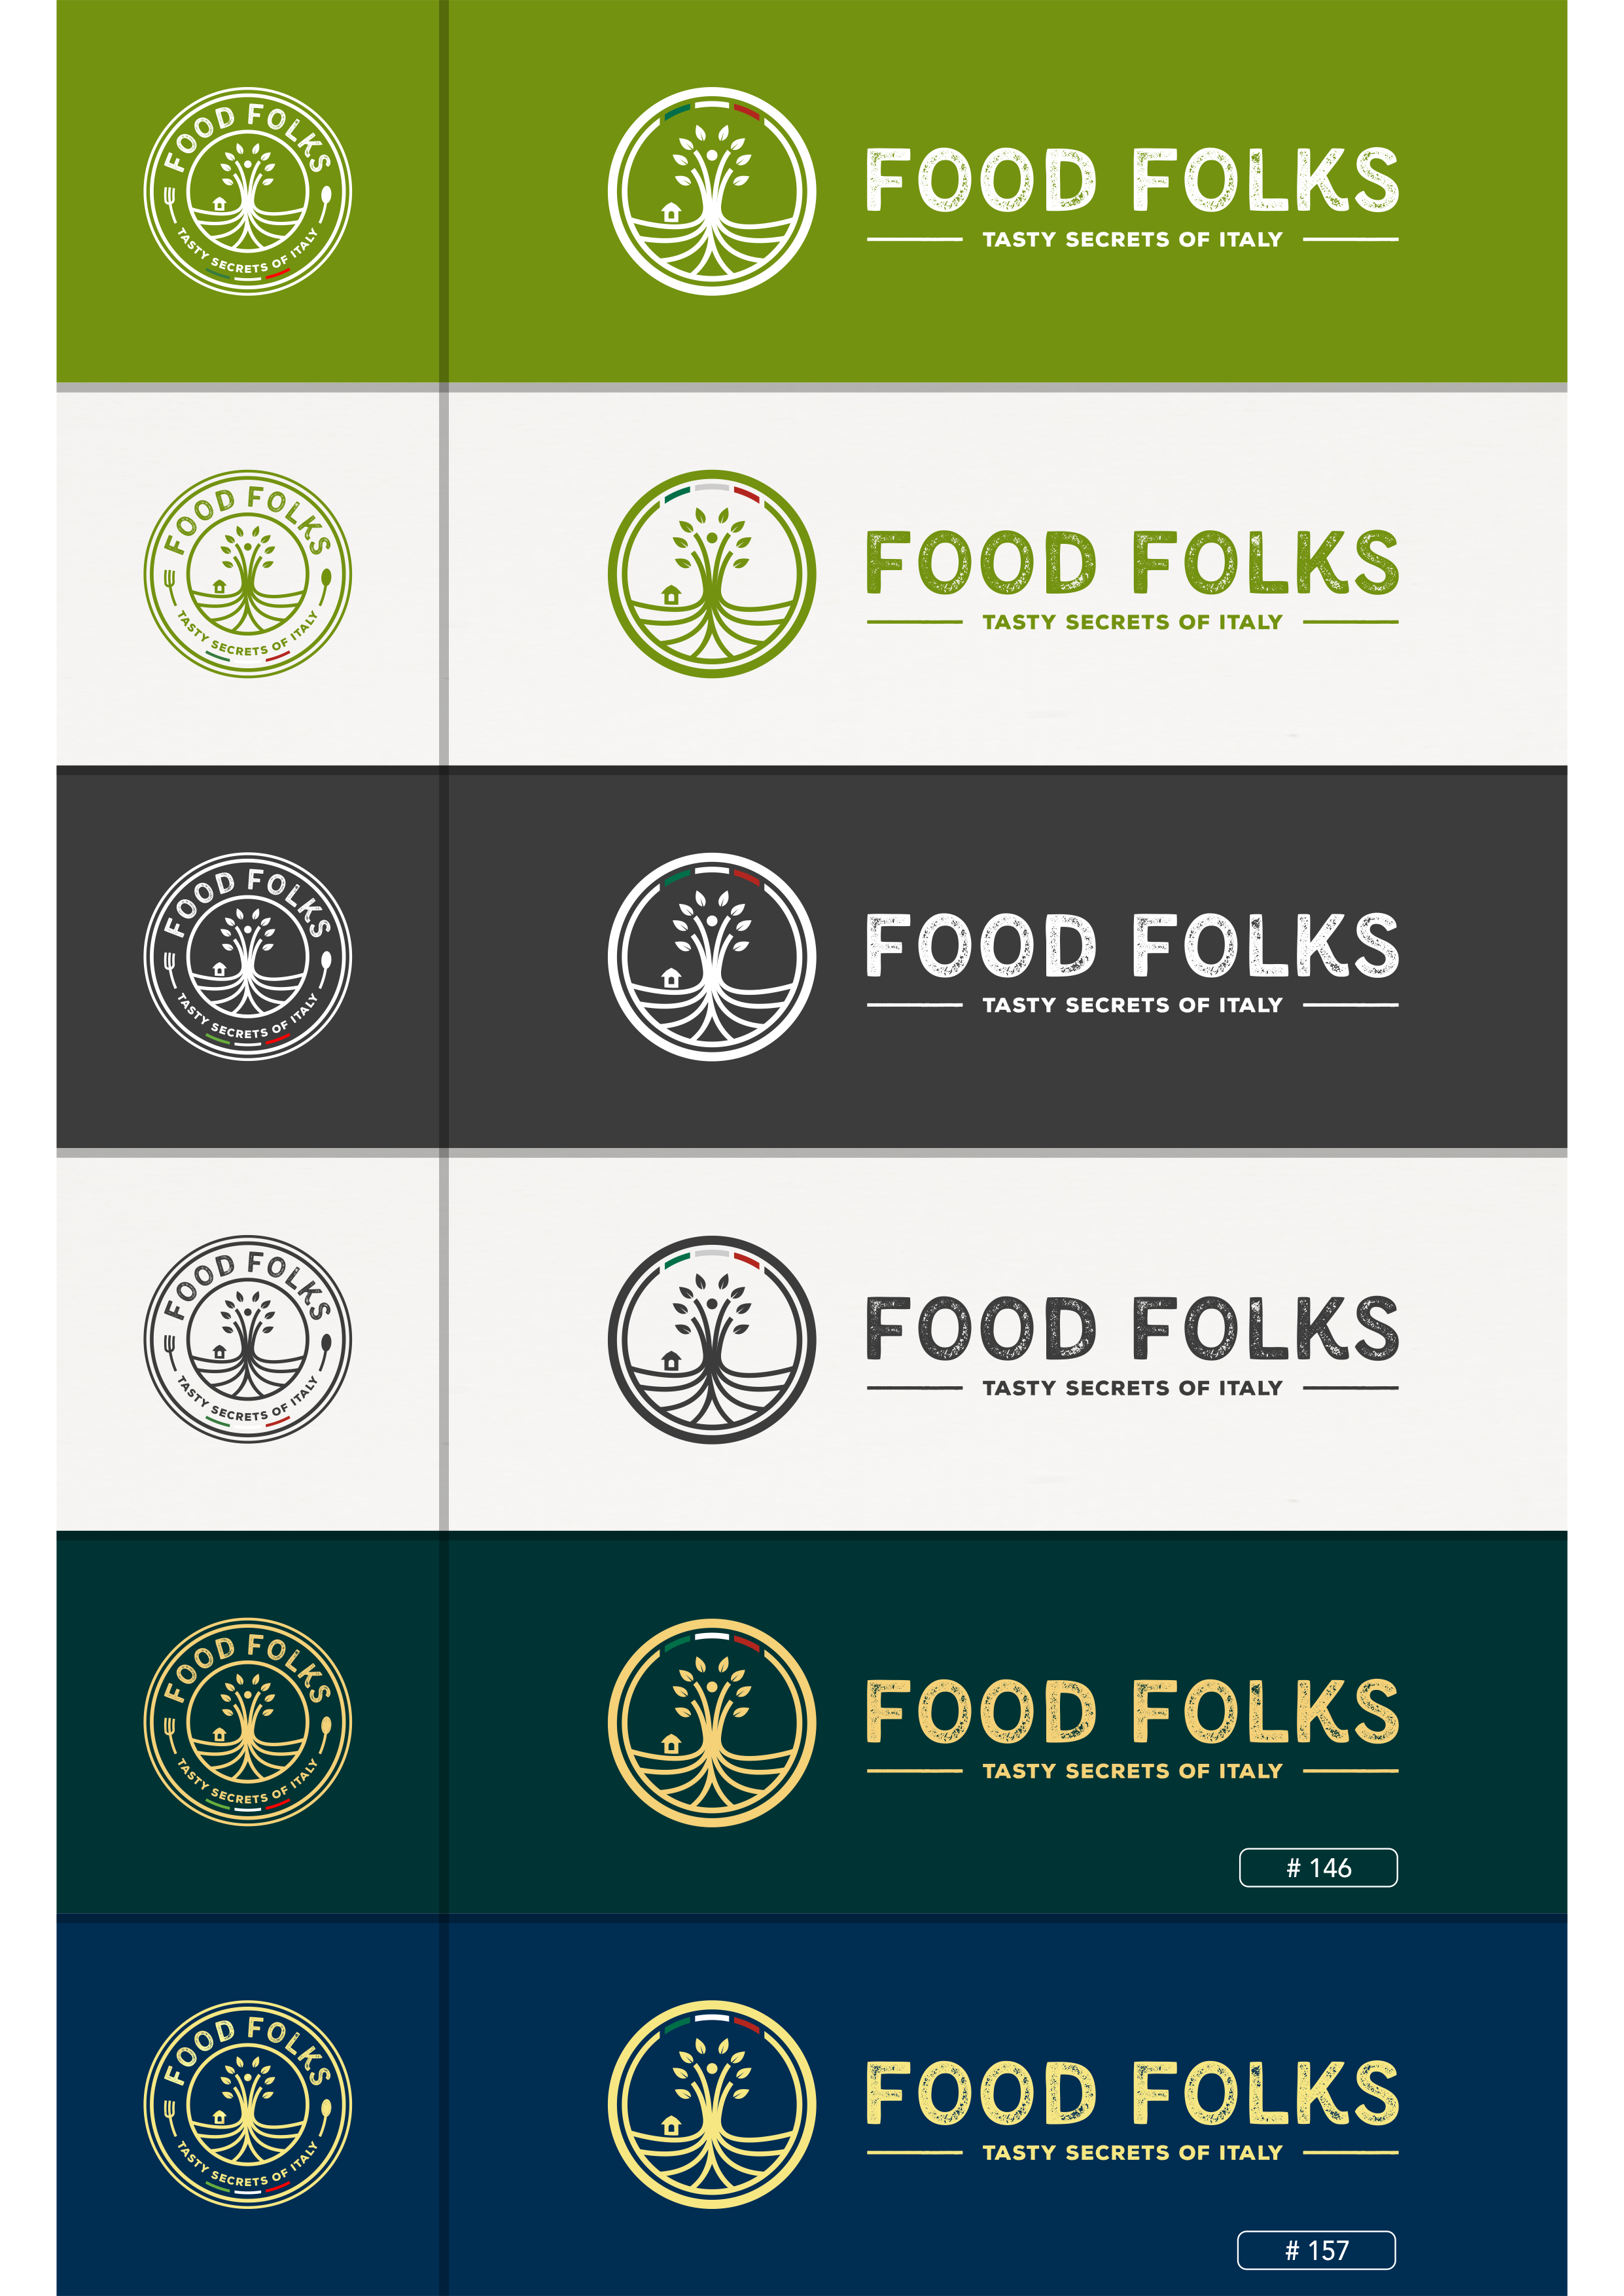 Food Folks, we need a logo to promote worldwide people, places and products!